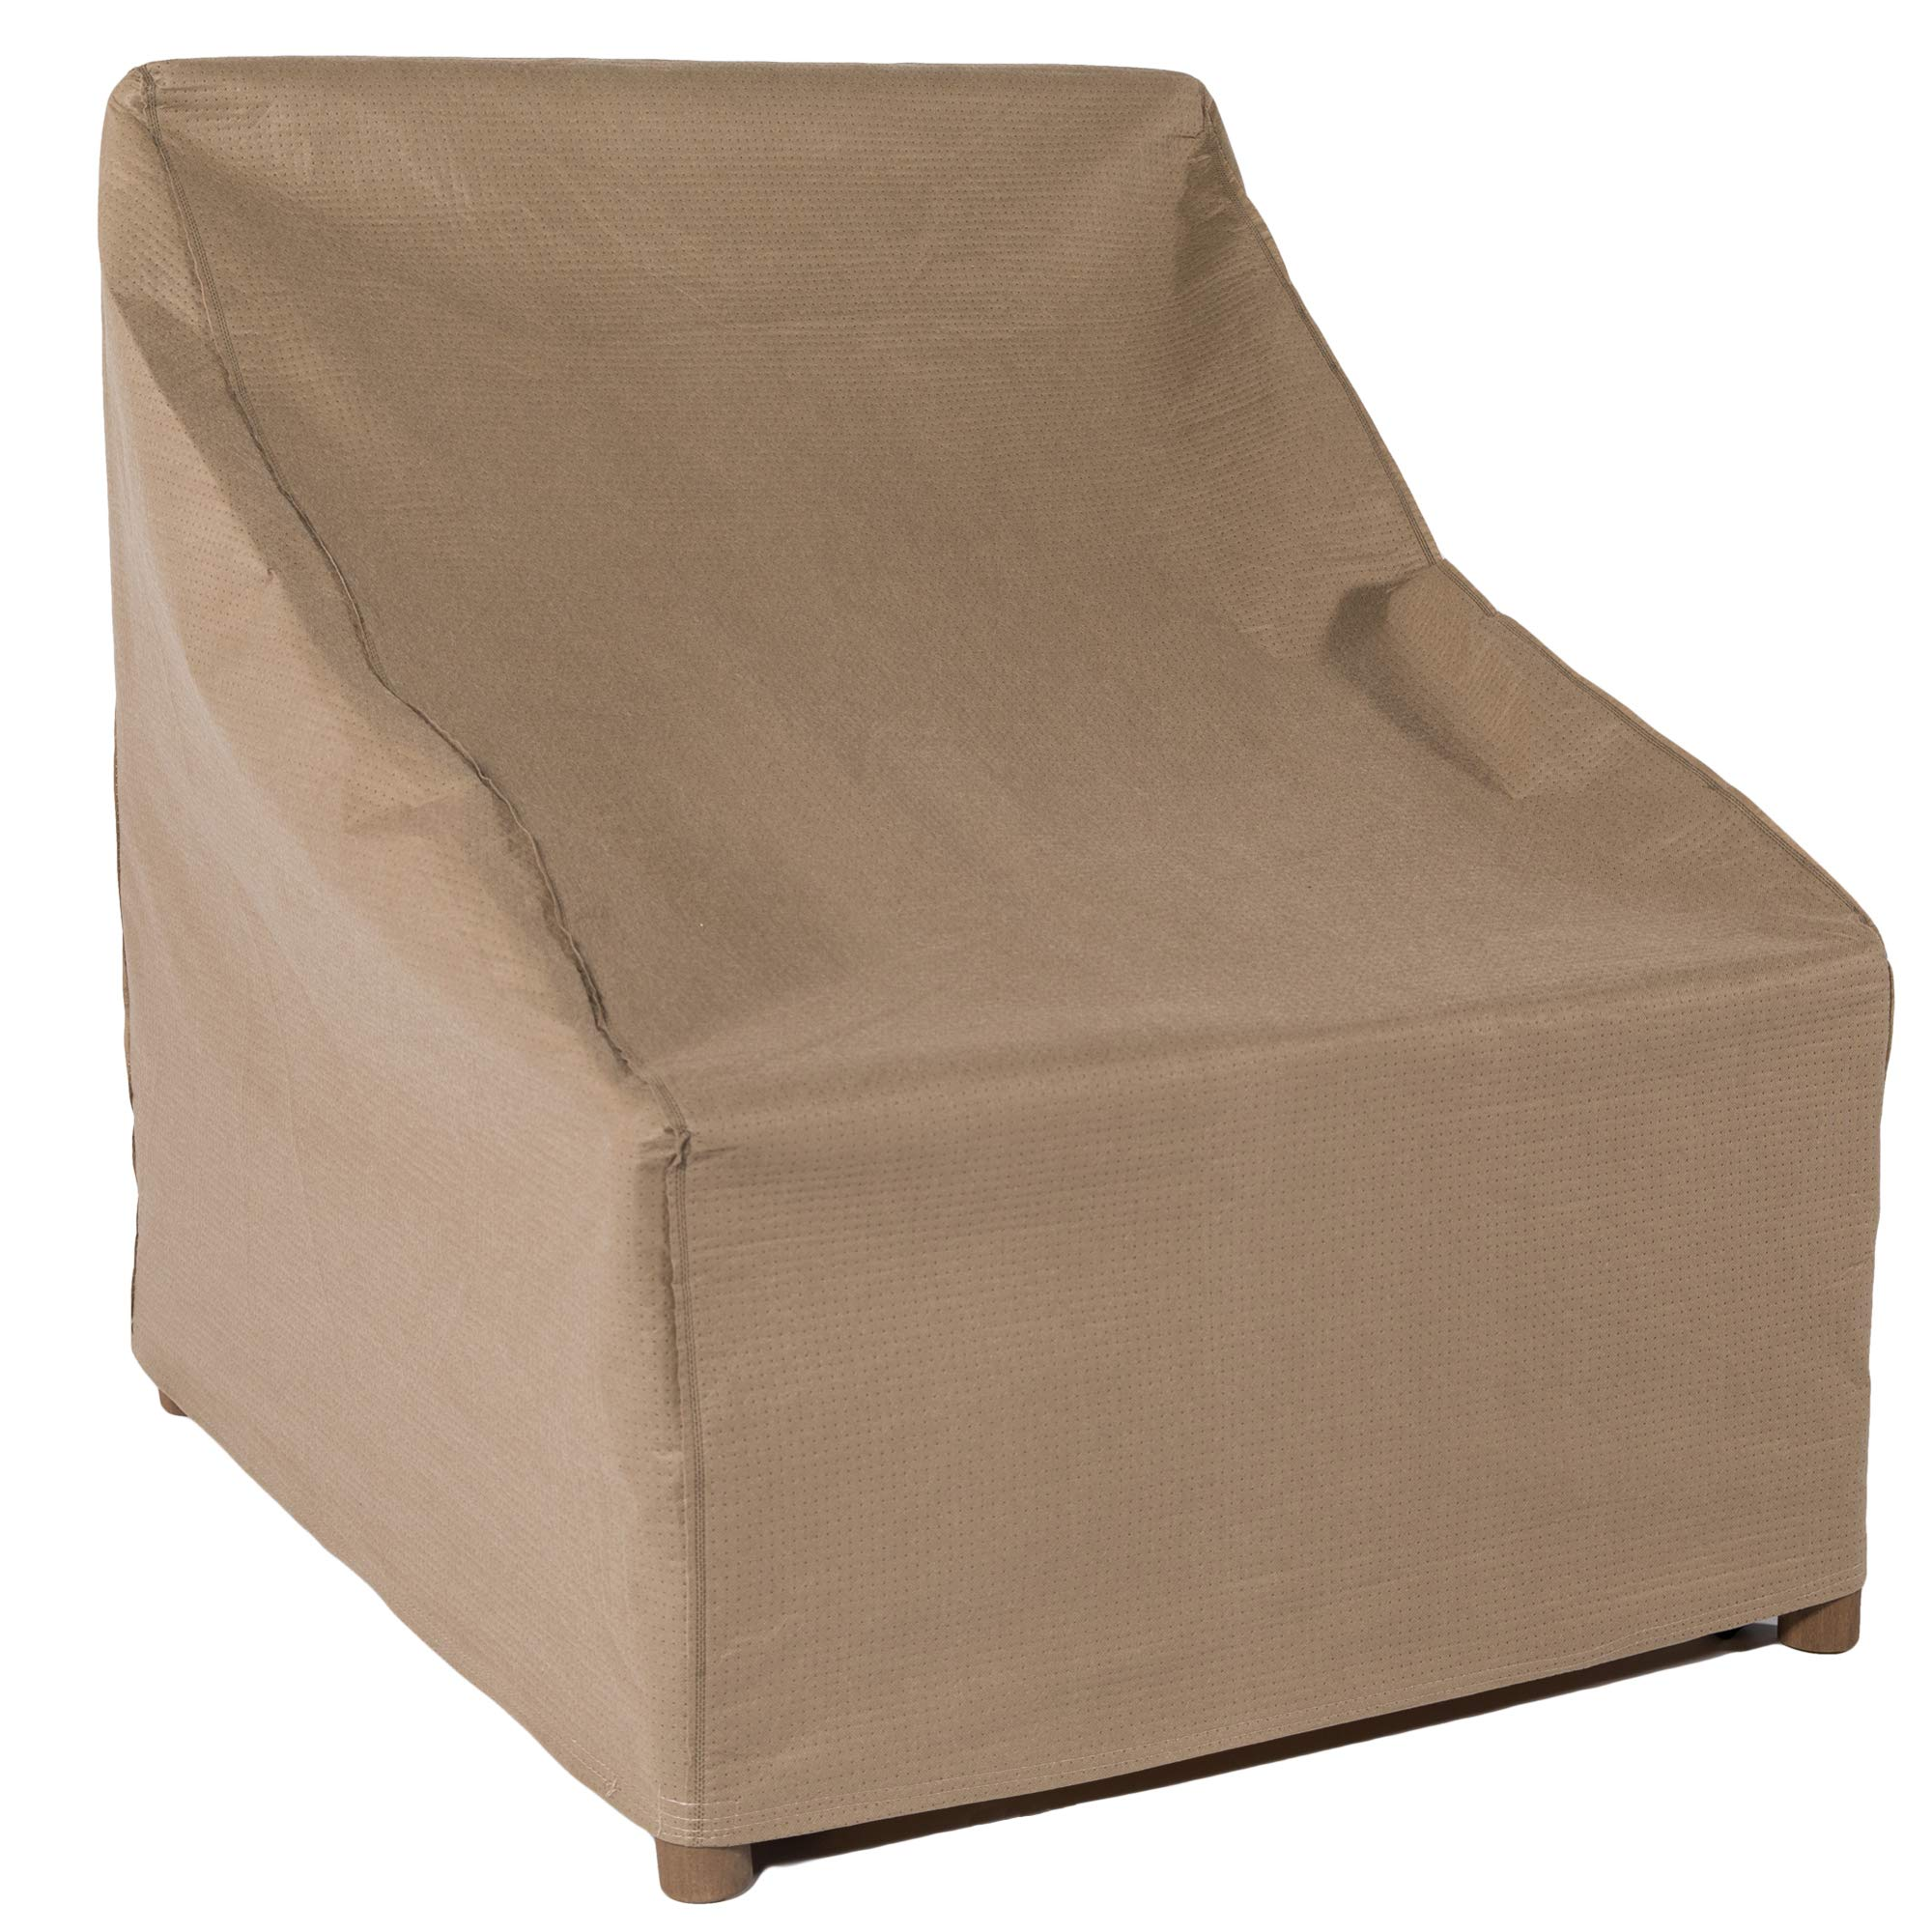 Duck Covers Essential Patio Chair Cover, 32-Inch